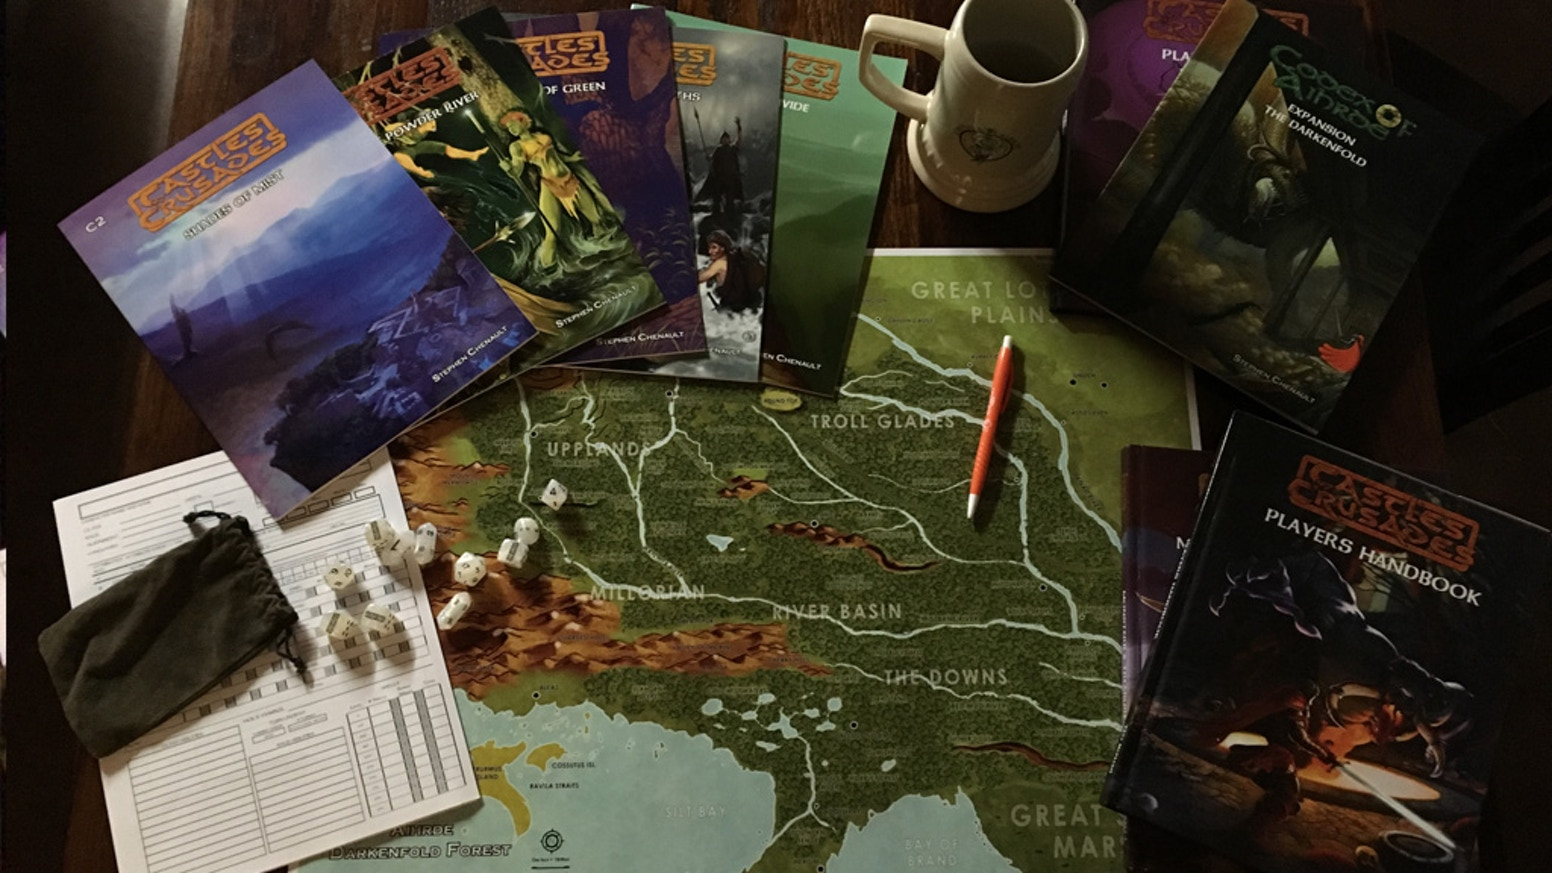 Steve Chenault's Darkenfold! The adventures that launched the bone cleaving, magic wielding bare-knuckles RPG: Castles & Crusades!